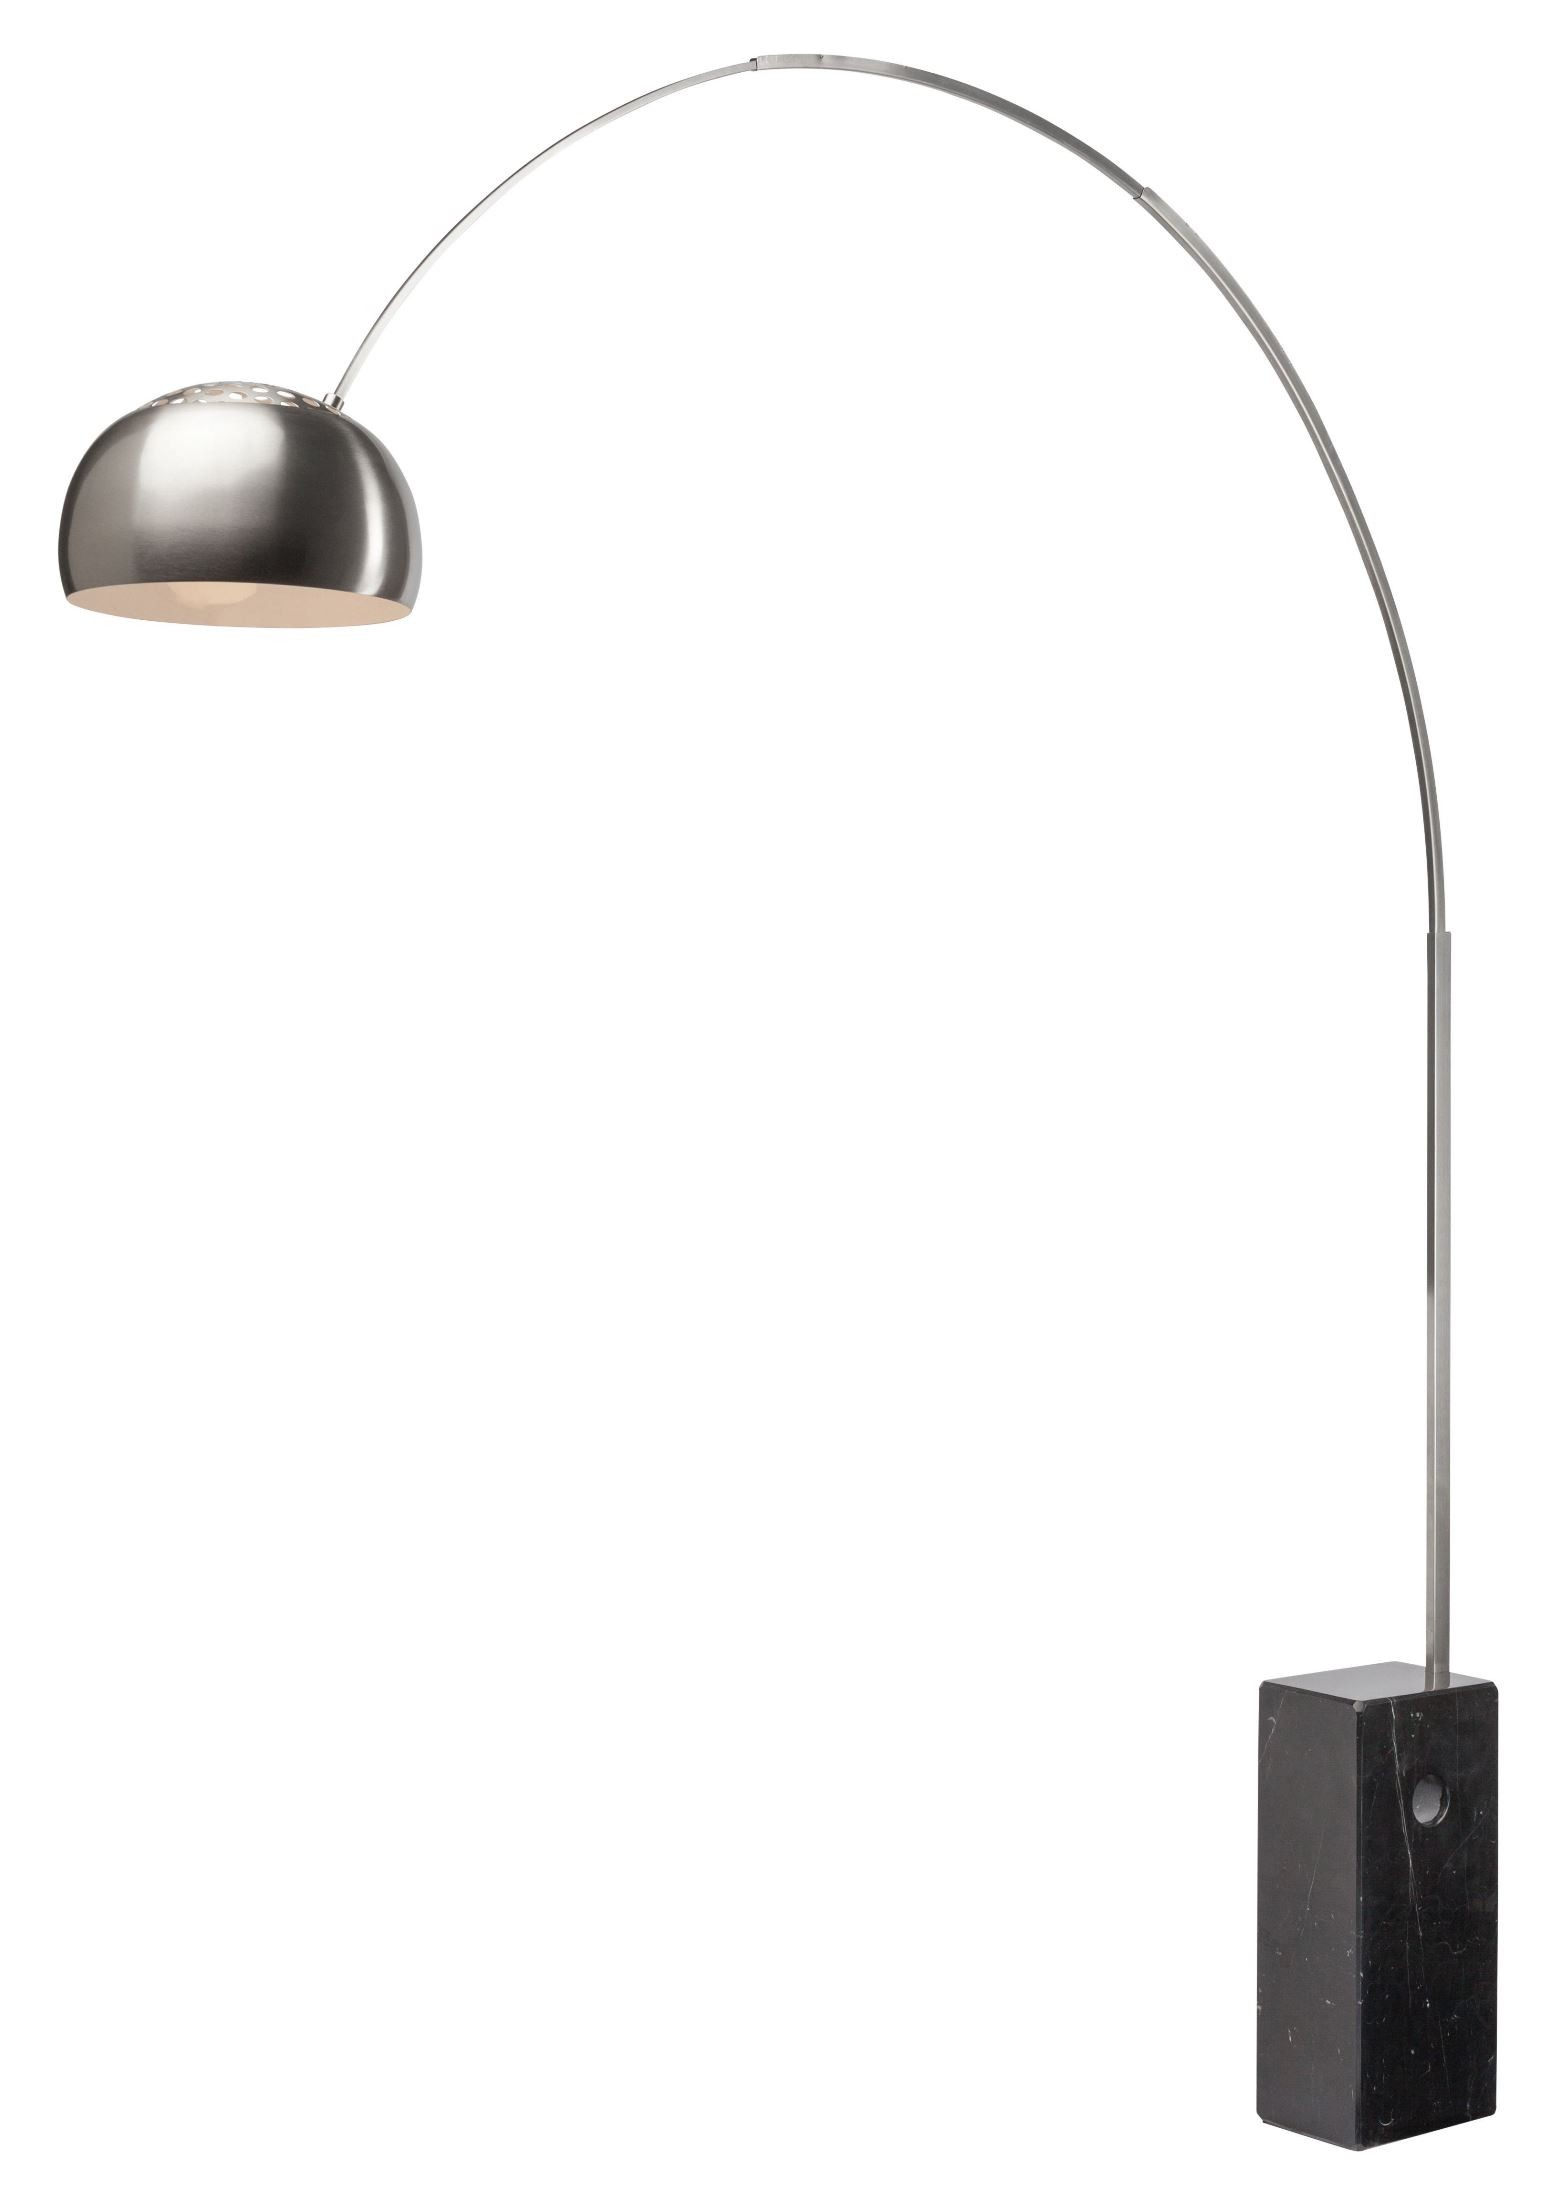 stylecraft and lamps item number bronze metal products floor lamp edison